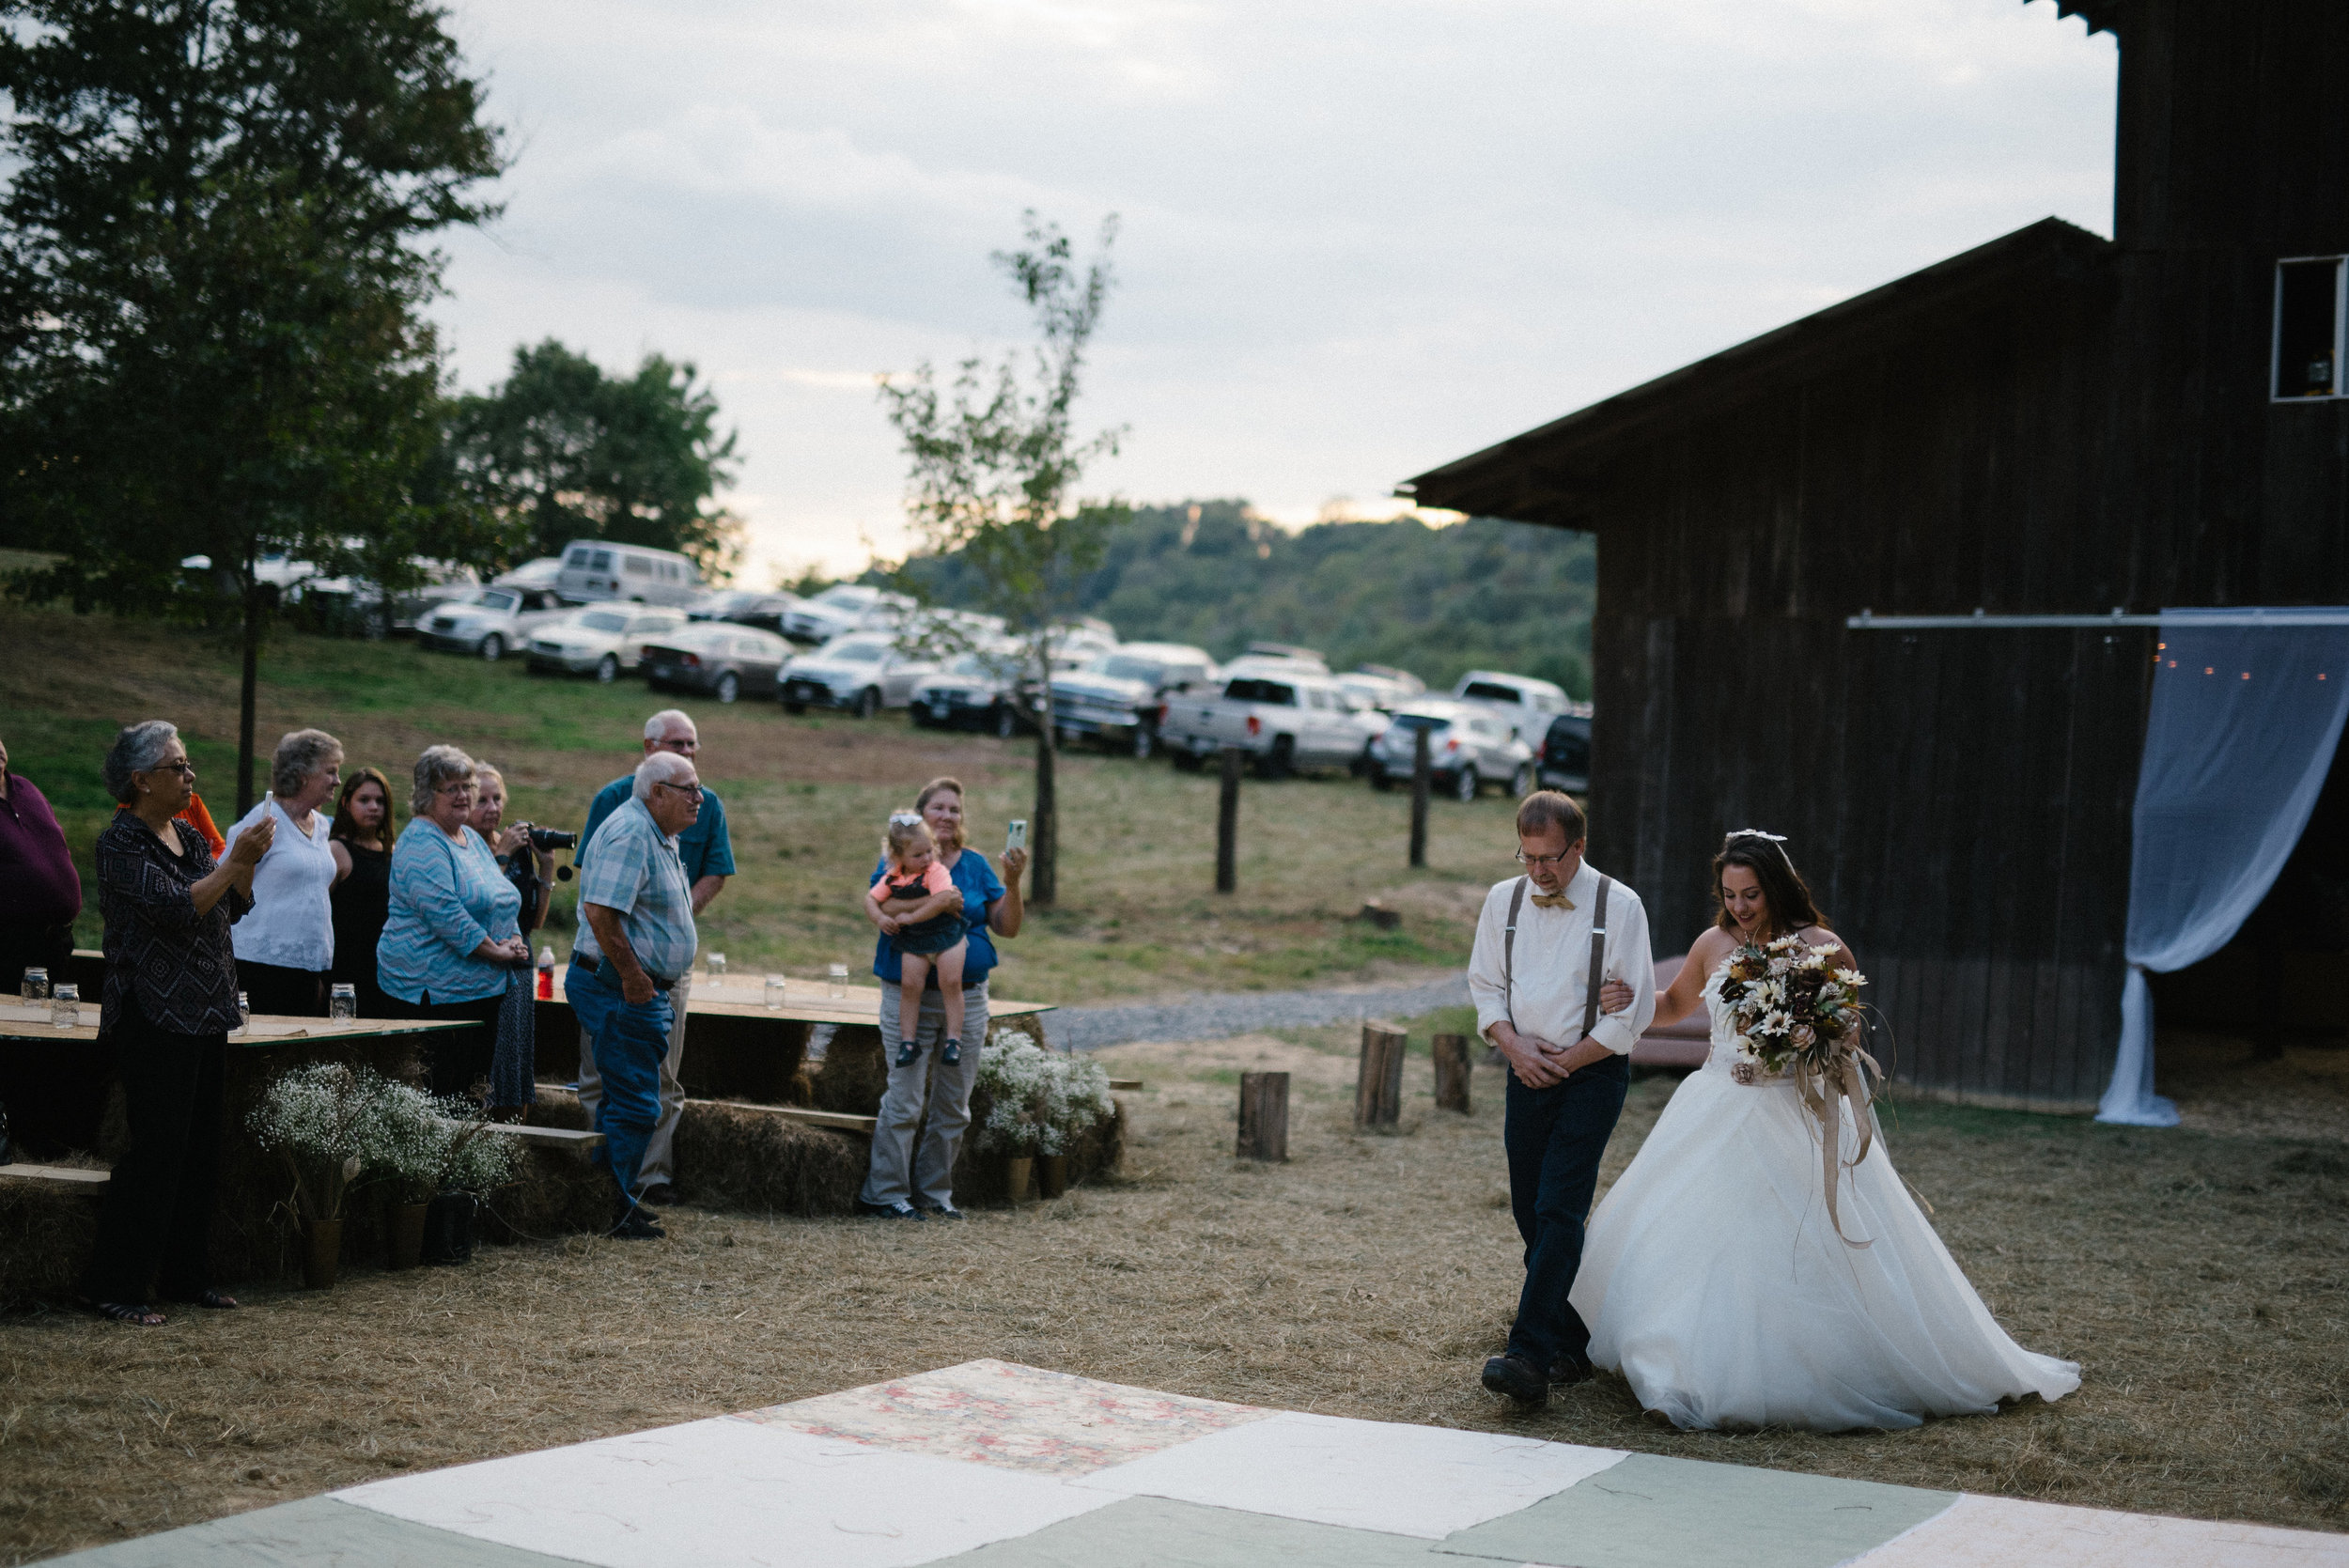 bride-and-father-walking-down-the-aisle.jpg